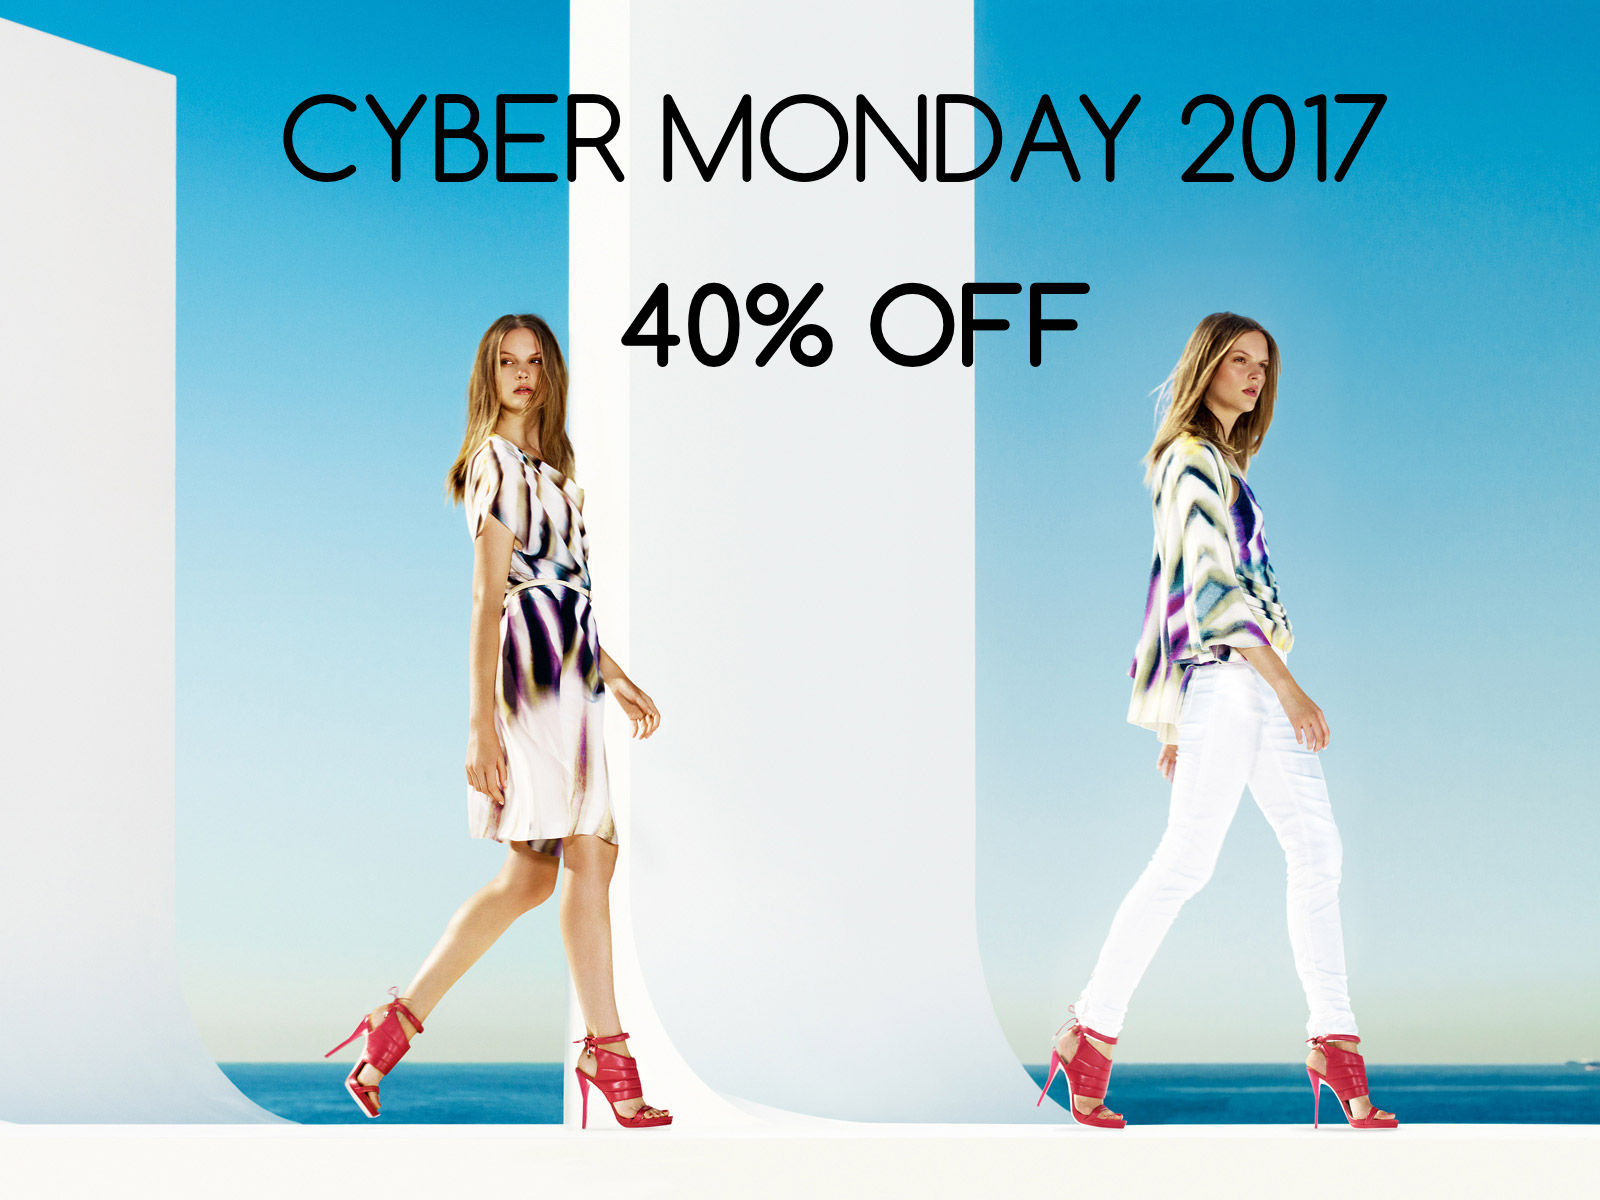 cyber-monday-image-1